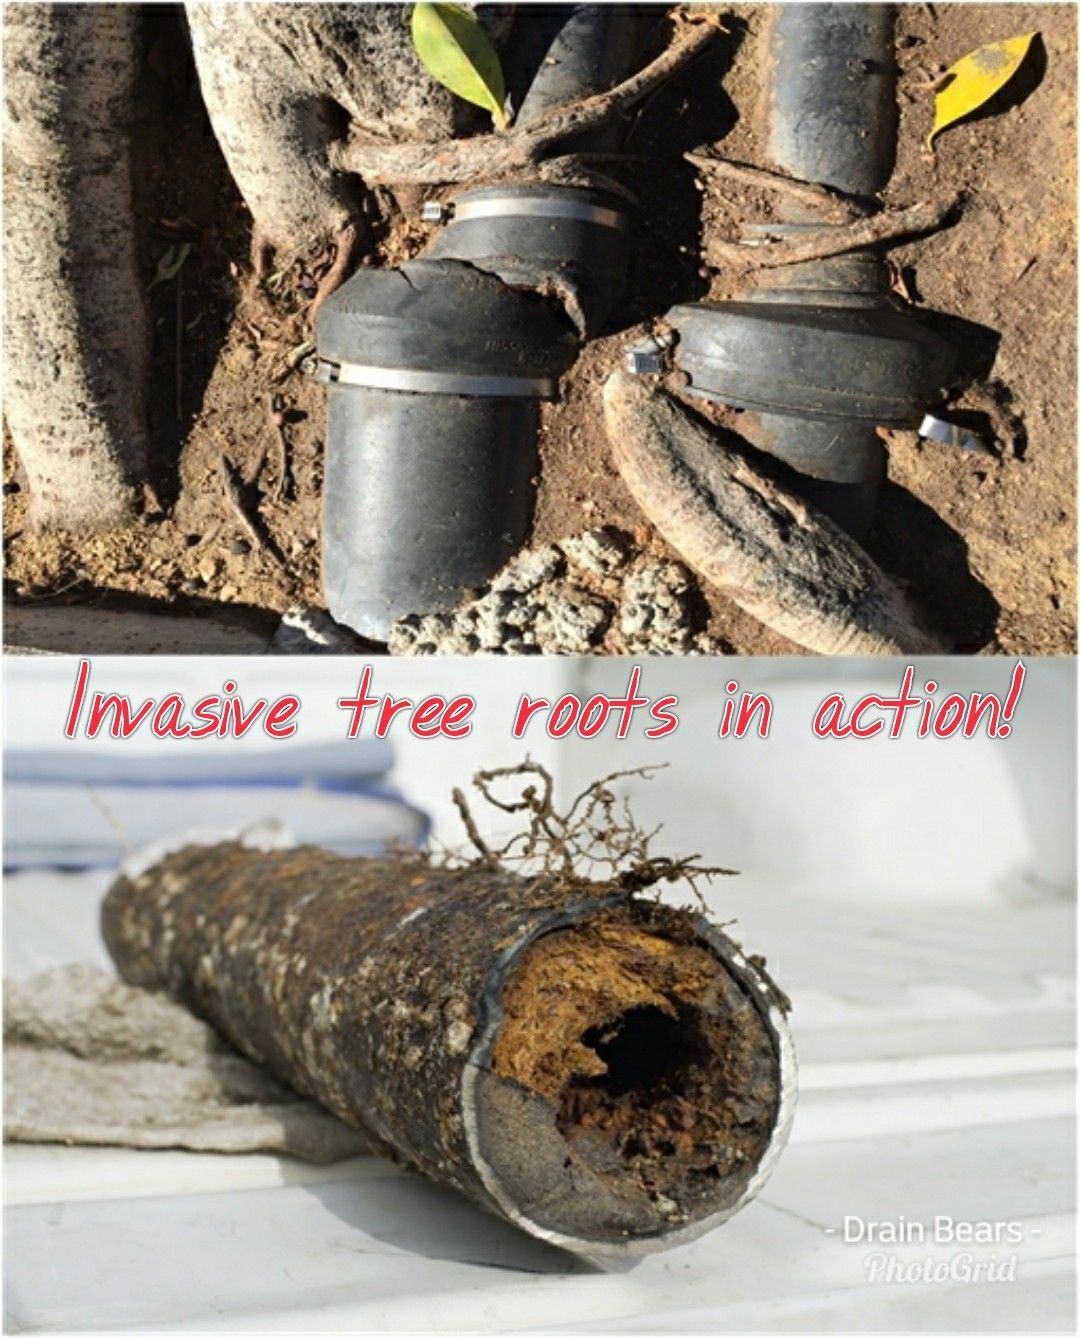 If you suspect that you might have invasive tree roots